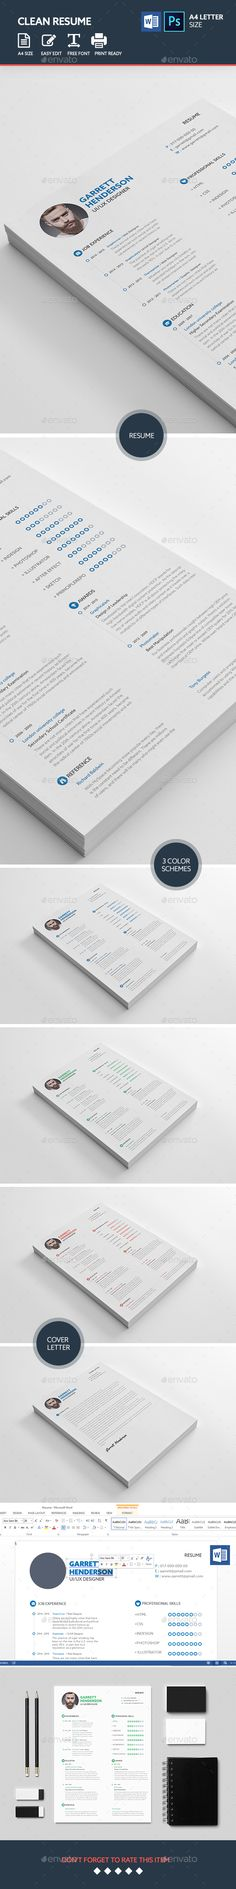 Clean Resume Template PSD, MS Word. Download here: http://graphicriver.net/item/clean-resume-templates/15998664?ref=ksioks